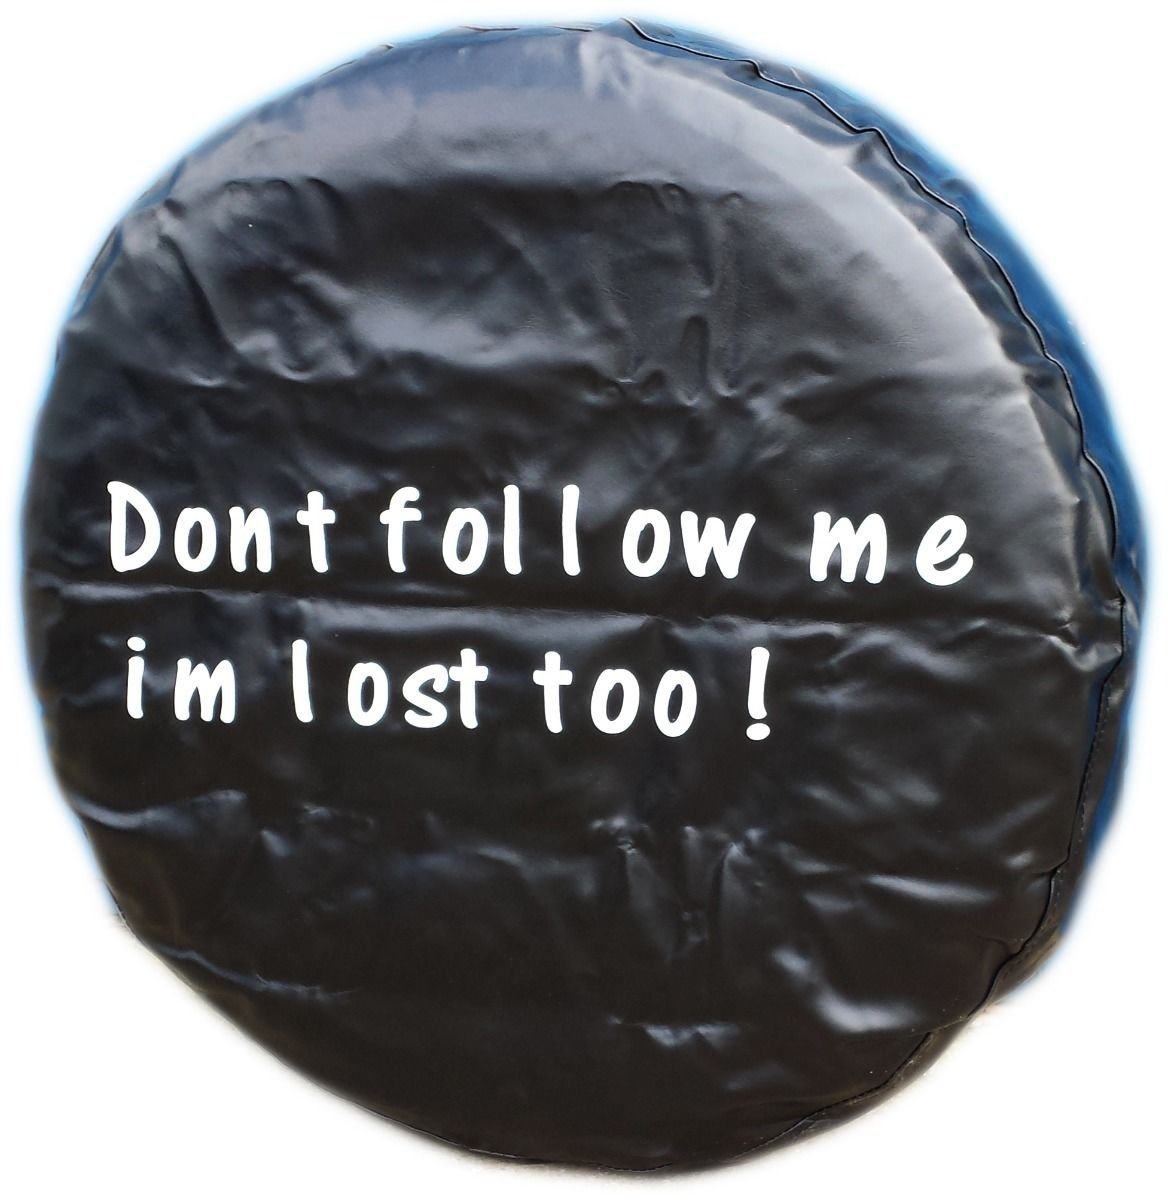 WHEEL COVER WHEELCOVER SPARE TYRE TIRE 4X4 FOR ALL SIZES DONT FOLLOW ME IM LOST TOO! - LET US KNOW YOUR SIZE BargainworldUK